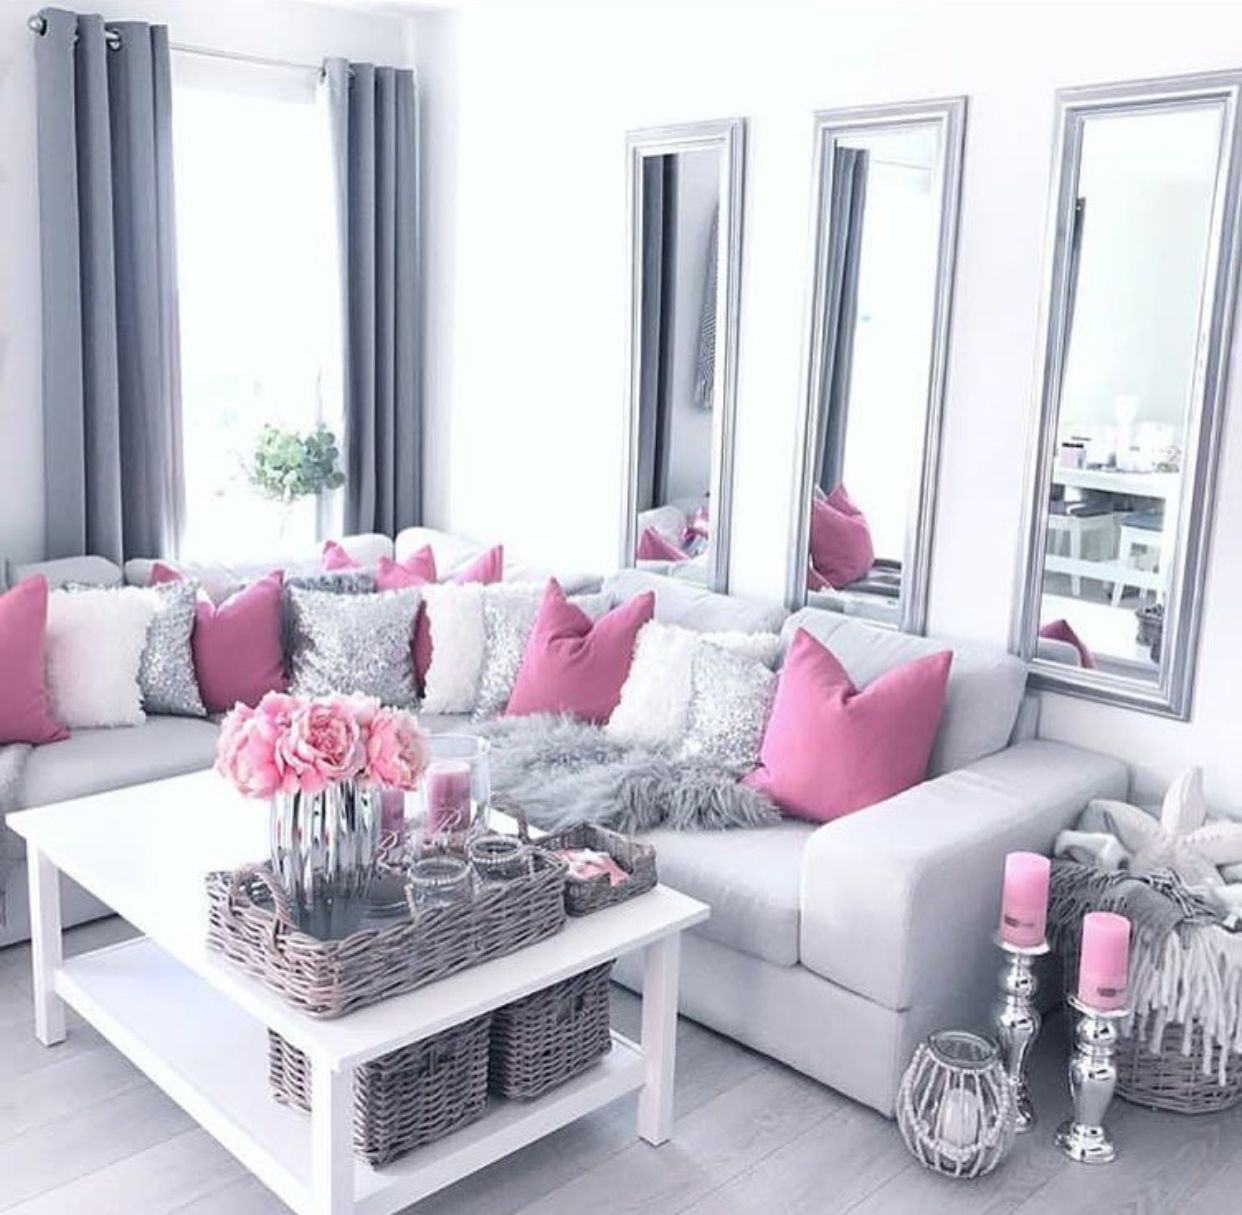 Pin By Teia Nicole On Home Decoration Living Room Decor Modern